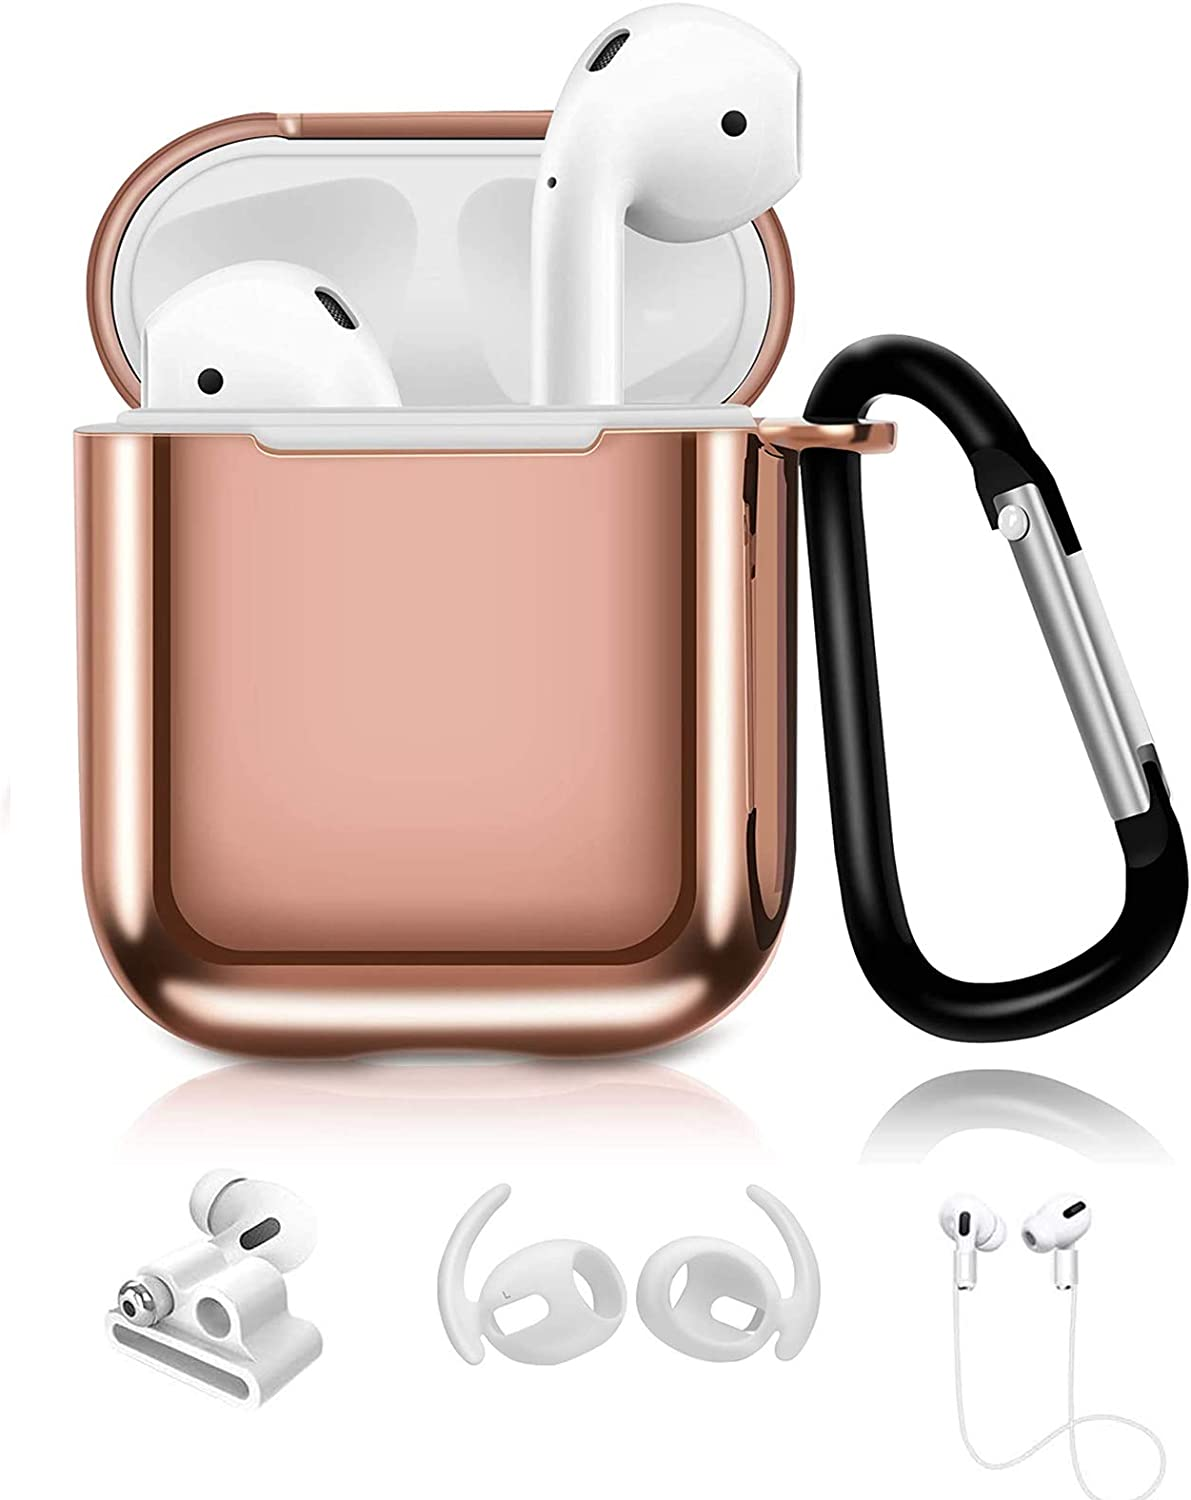 Aiiko AirPods Case Cover,Upgrade TPU Plated Case with Keychain/Anti-Lost Strap/Earhooks and Watch Band Holder,Shockproof Case Cover Compatible with Apple AirPods 2&1 [Front LED Visible] - Rosegold